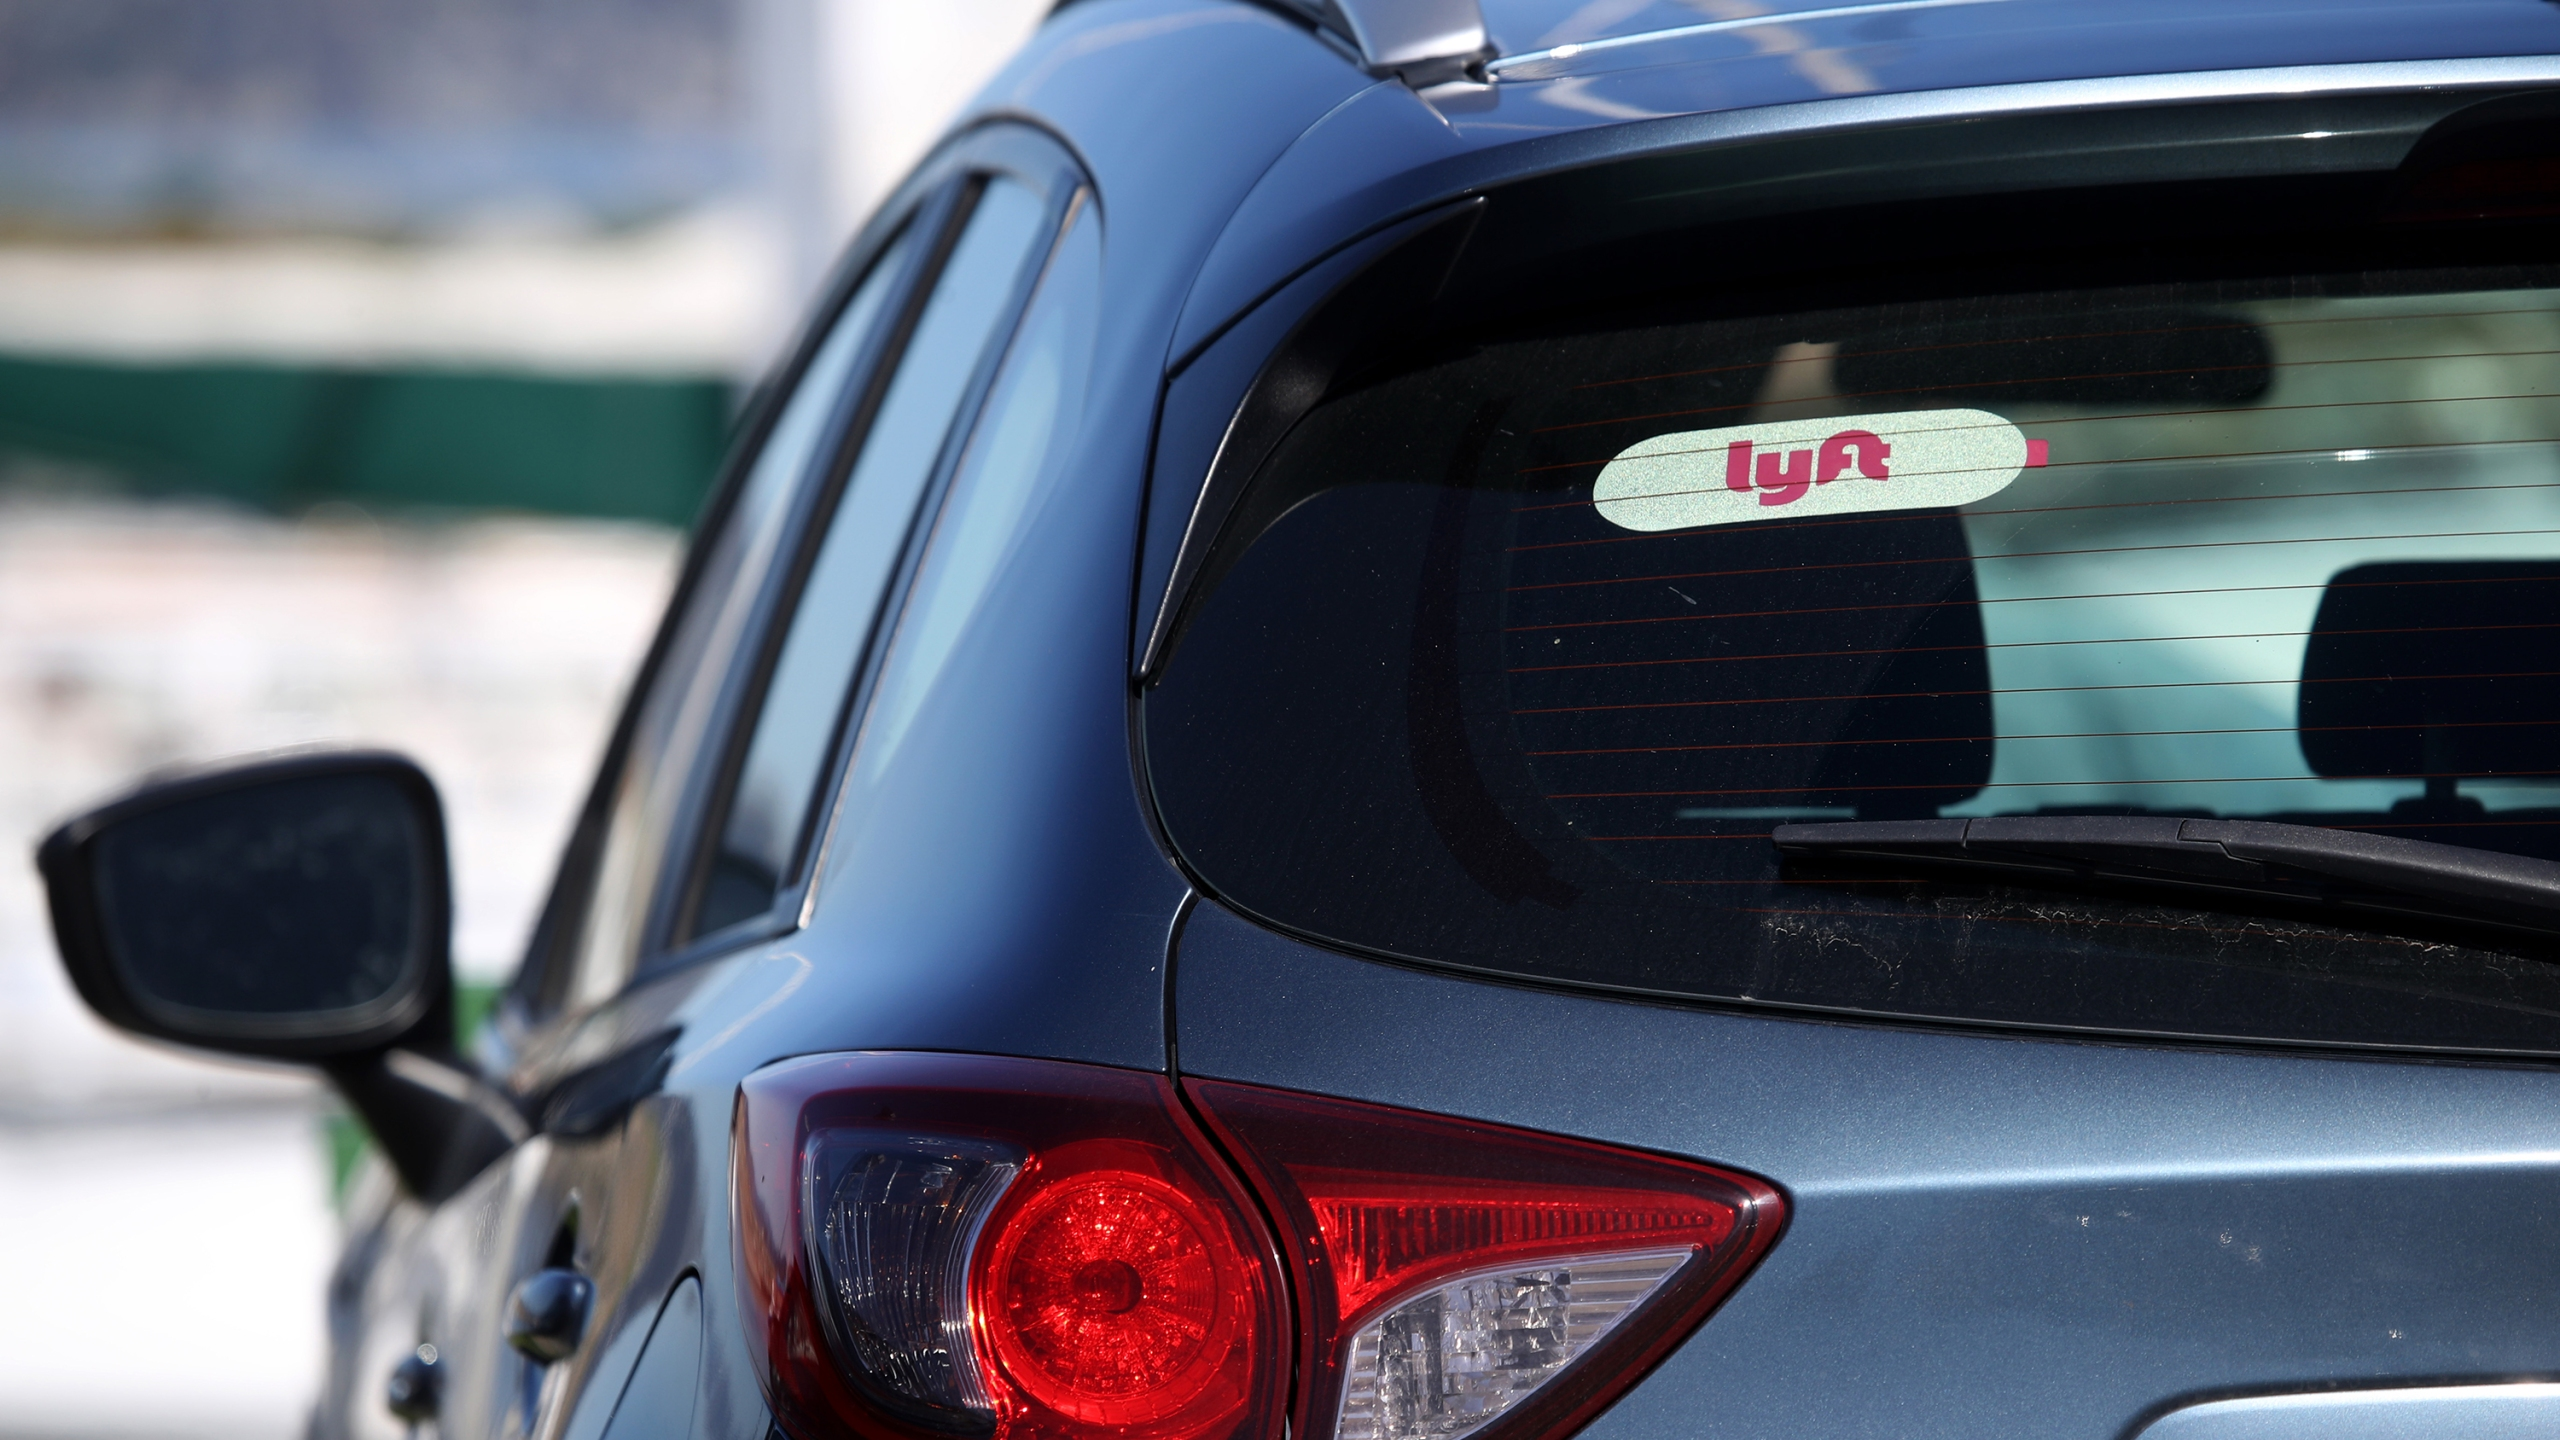 The Lyft logo is displayed on a car on March 11, 2019 in San Francisco, California. (Justin Sullivan/Getty Images)